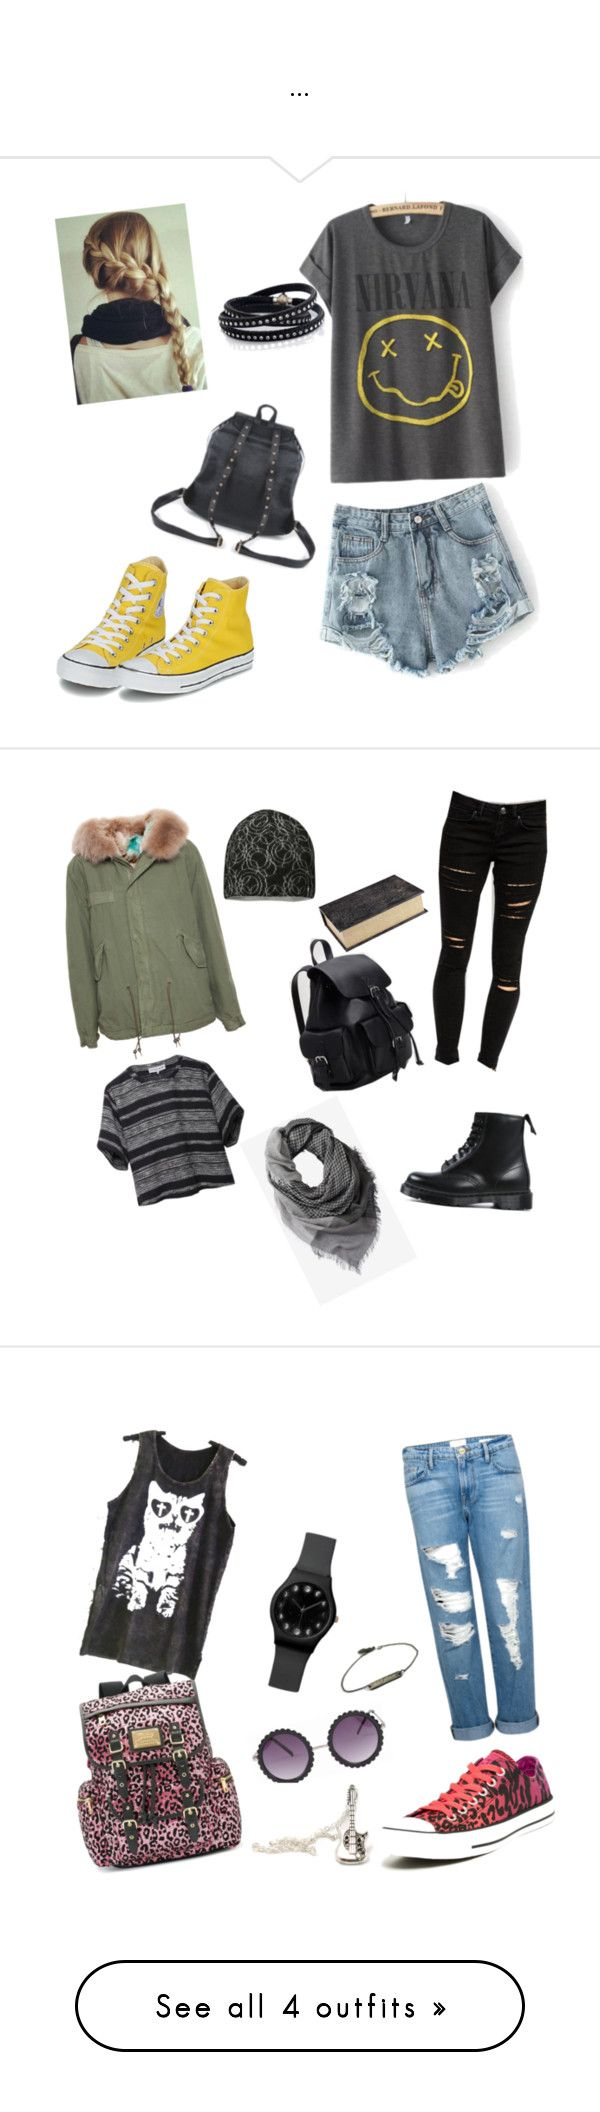 """""""..."""" by zana-k ❤ liked on Polyvore featuring Converse, Nila Anthony, Sif Jakobs Jewellery, Mr & Mrs Italy, ASOS, Dr. Martens, Outdoor Research, Apiece Apart, Forever 21 and Pier 1 Imports"""